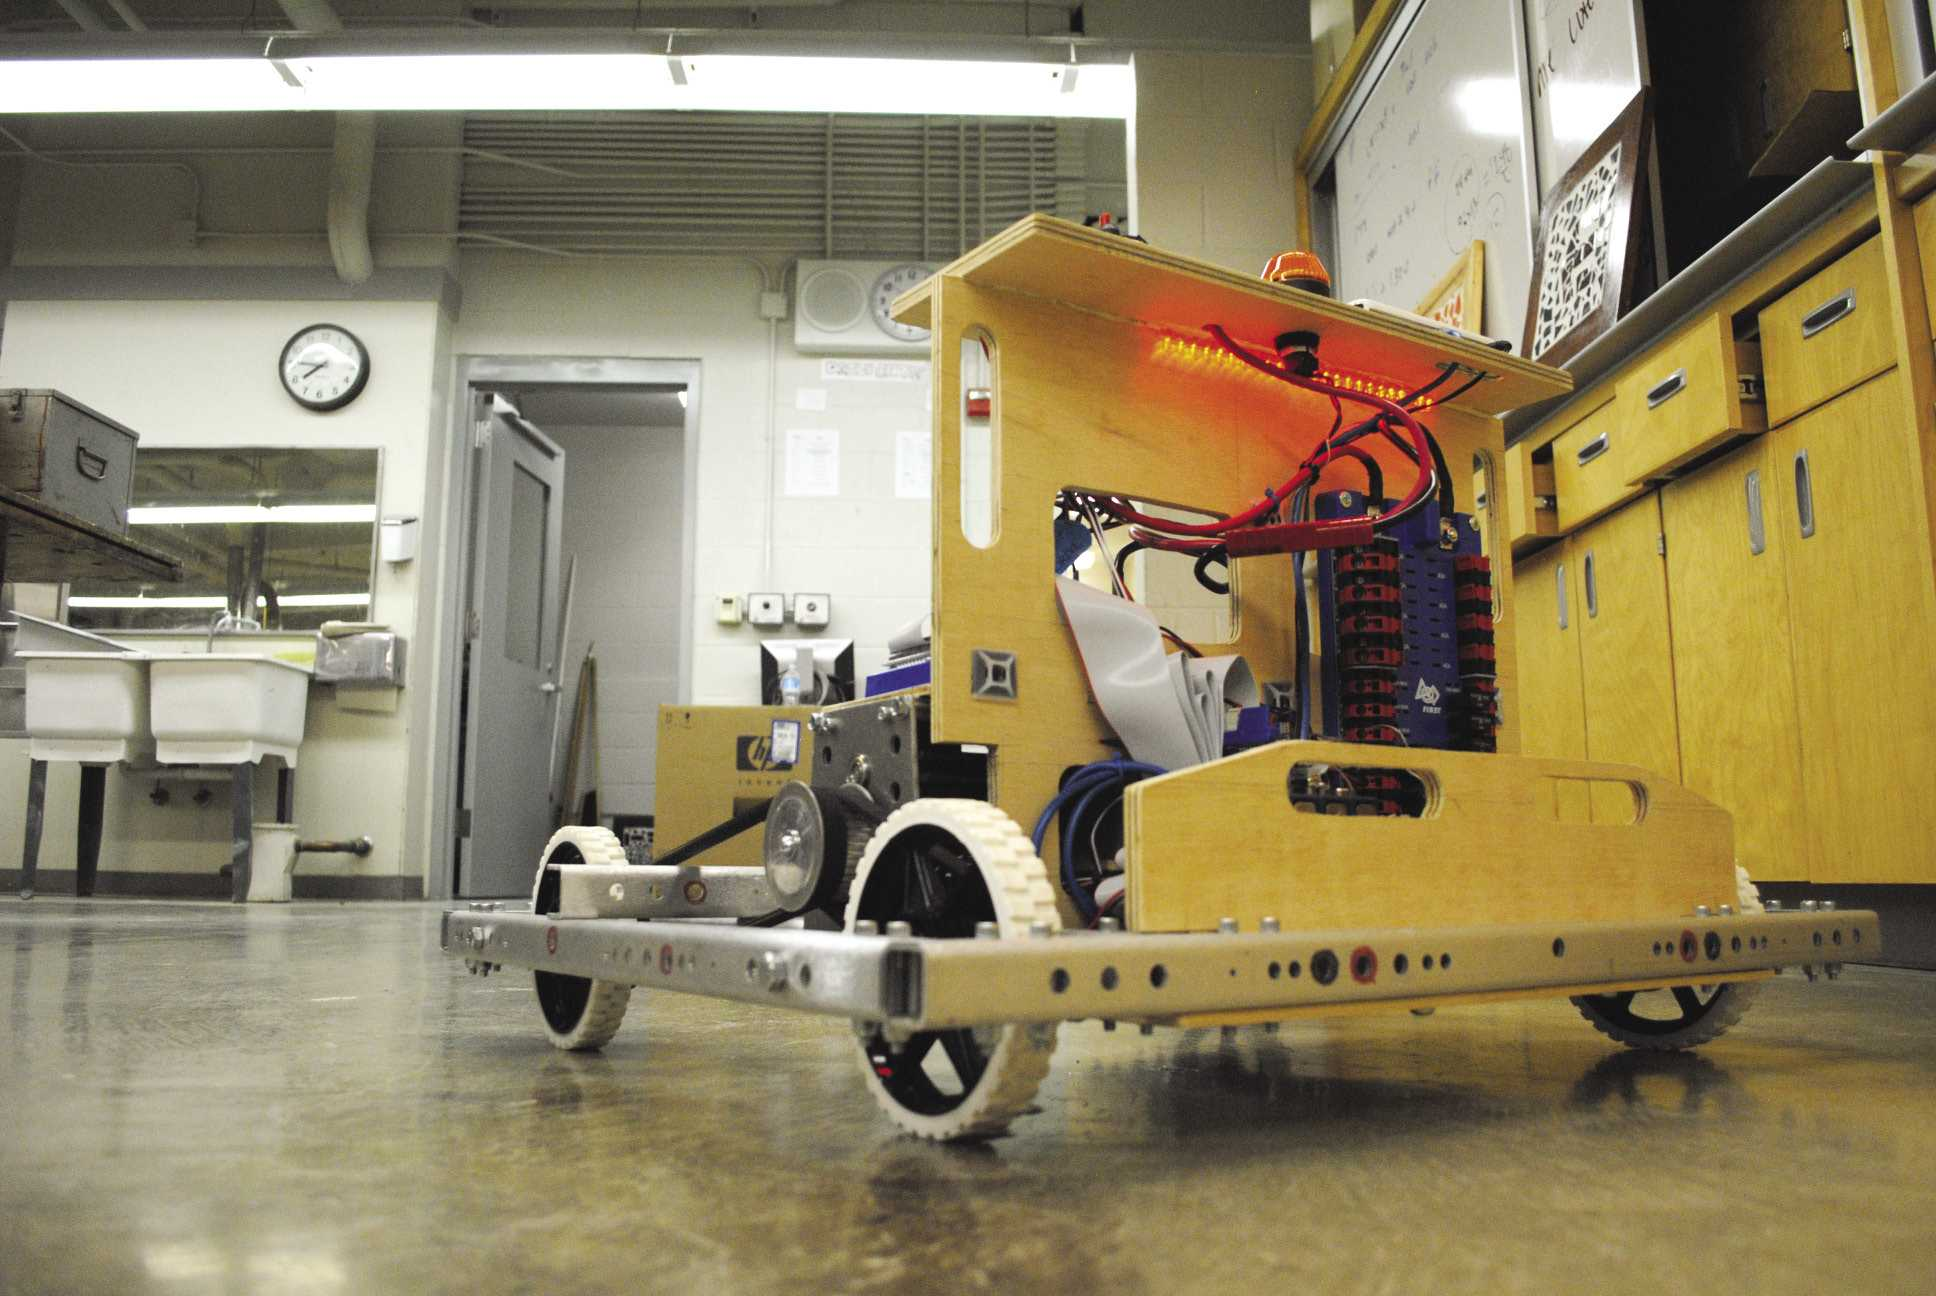 The 37-pound unfinished robot (right) is estimated to be 110 pounds upon completion. The fully functional robot is powered by two 80-amp motors, operated with a joystick and equipped with an emergency shutoff switch.  Photos by Nic Olson